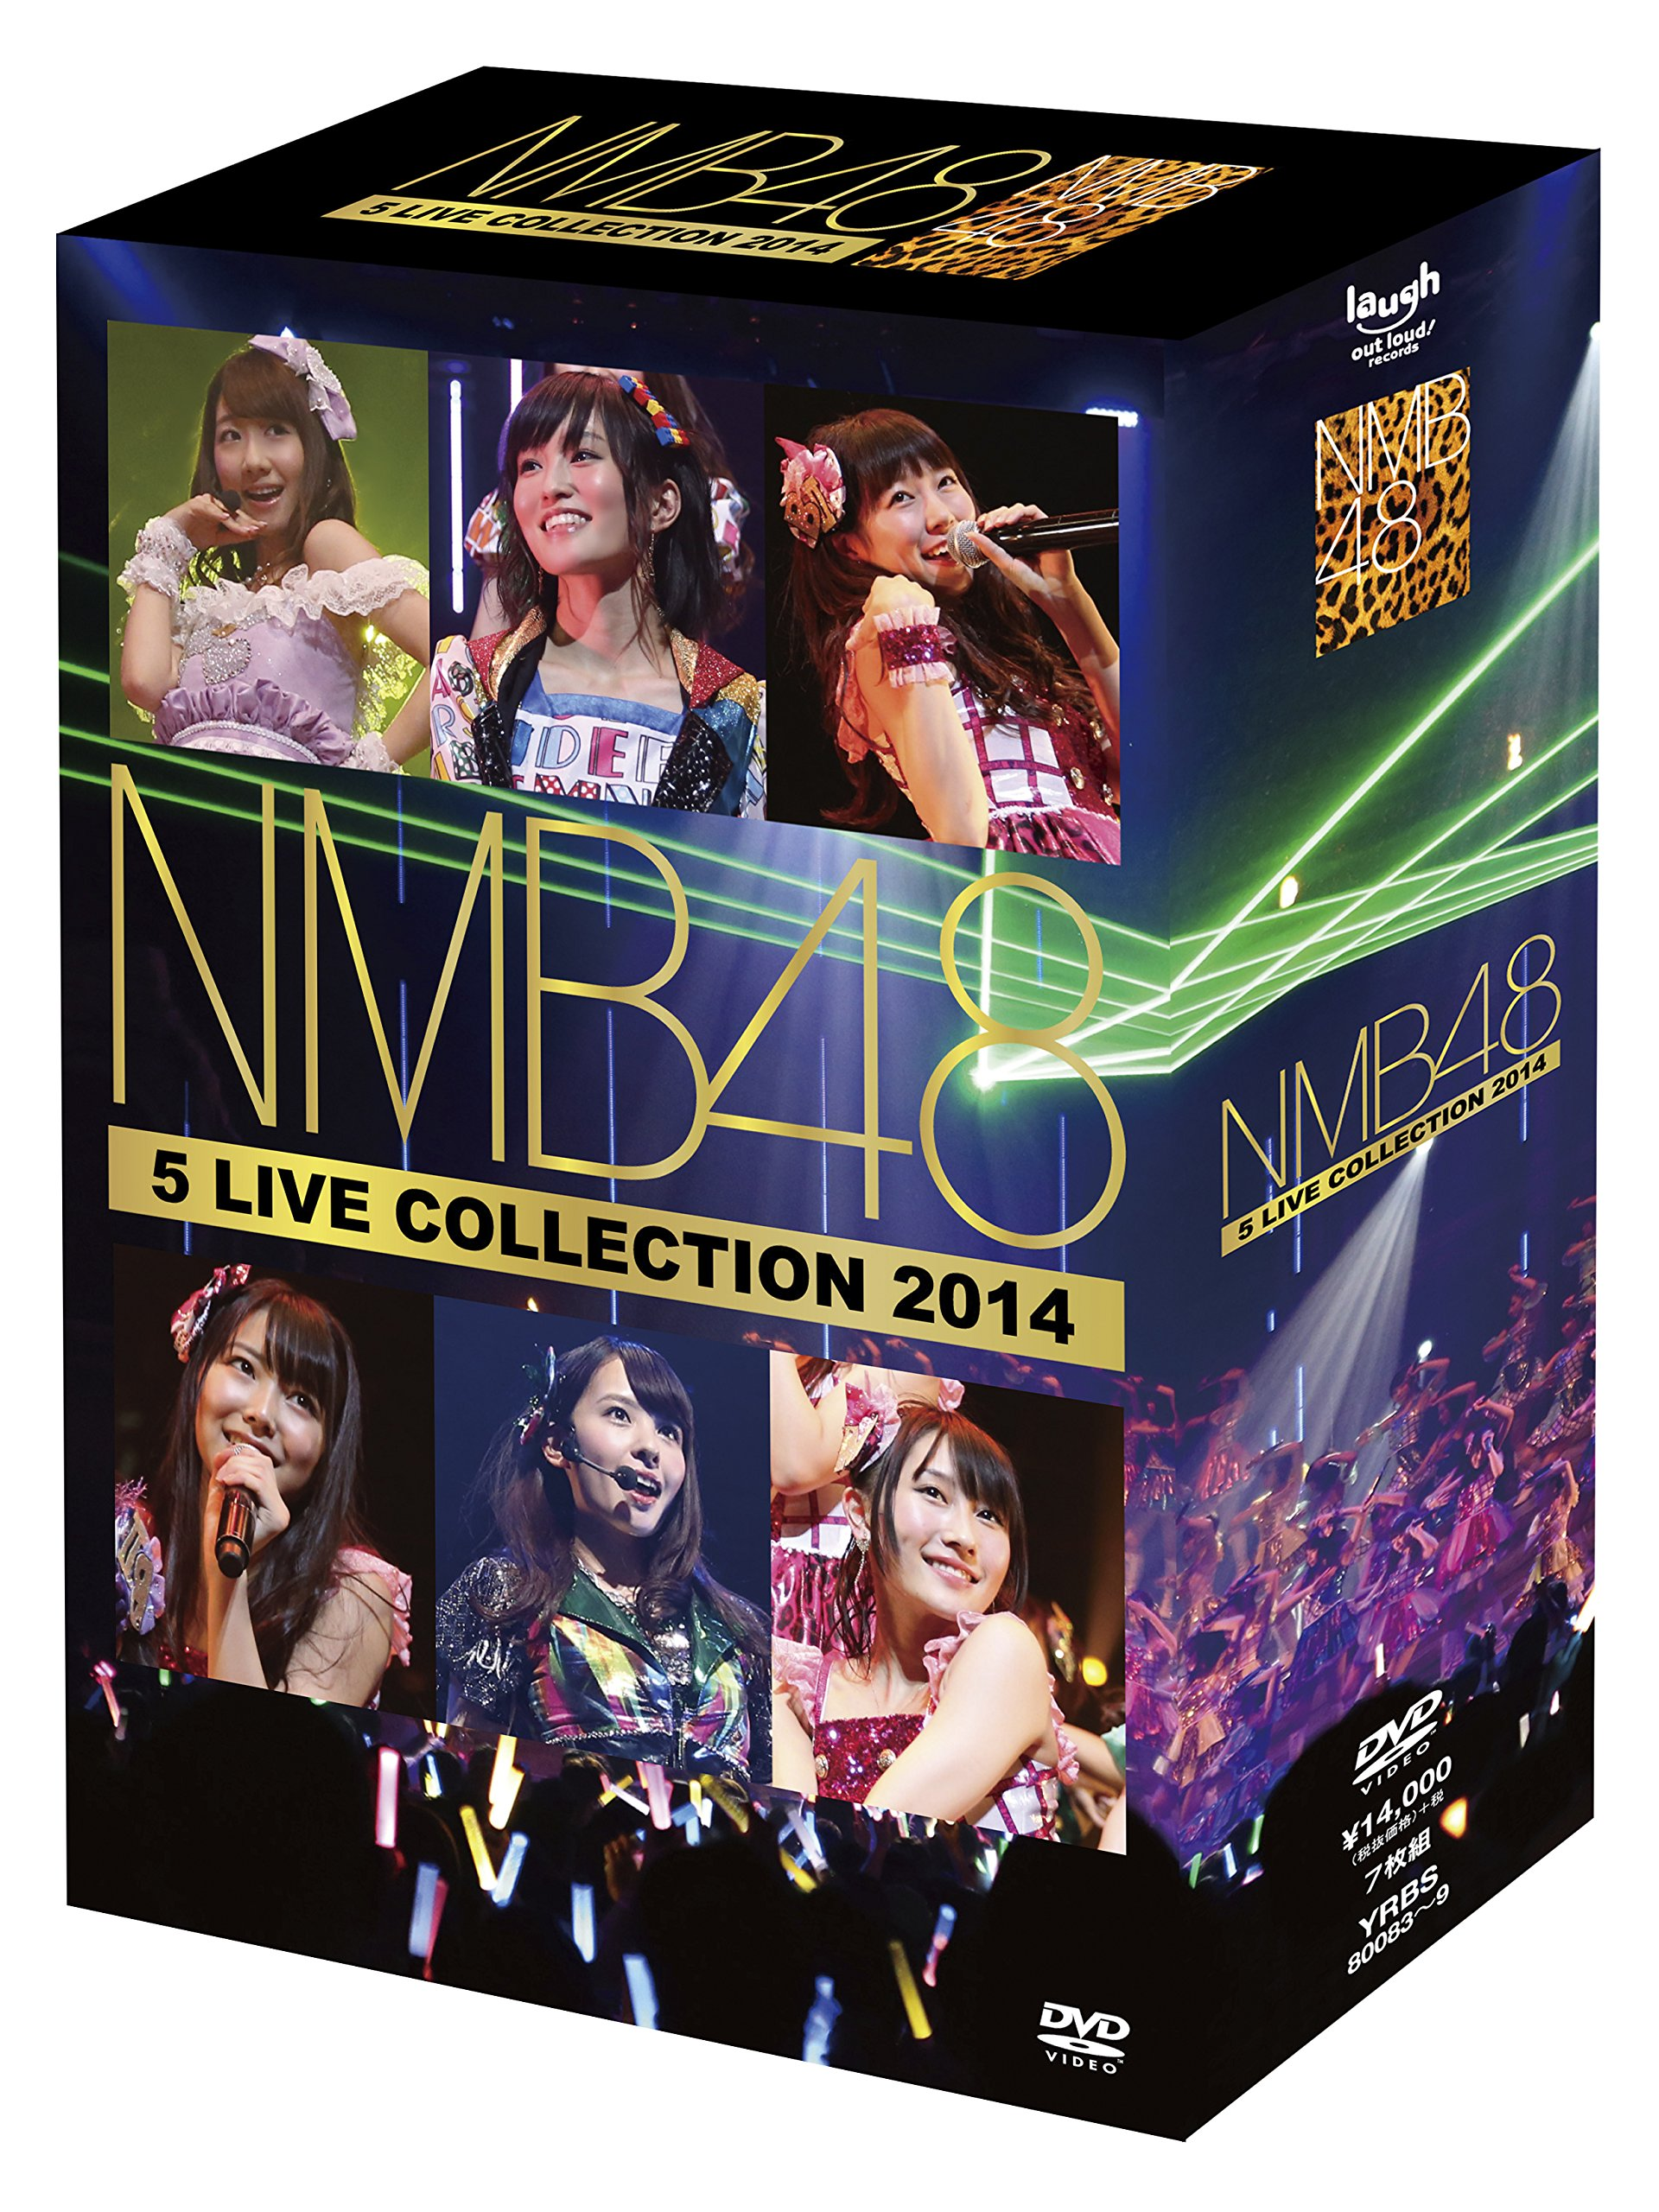 5 LIVE COLLECTION 2014 (多売特典なし) [DVD]